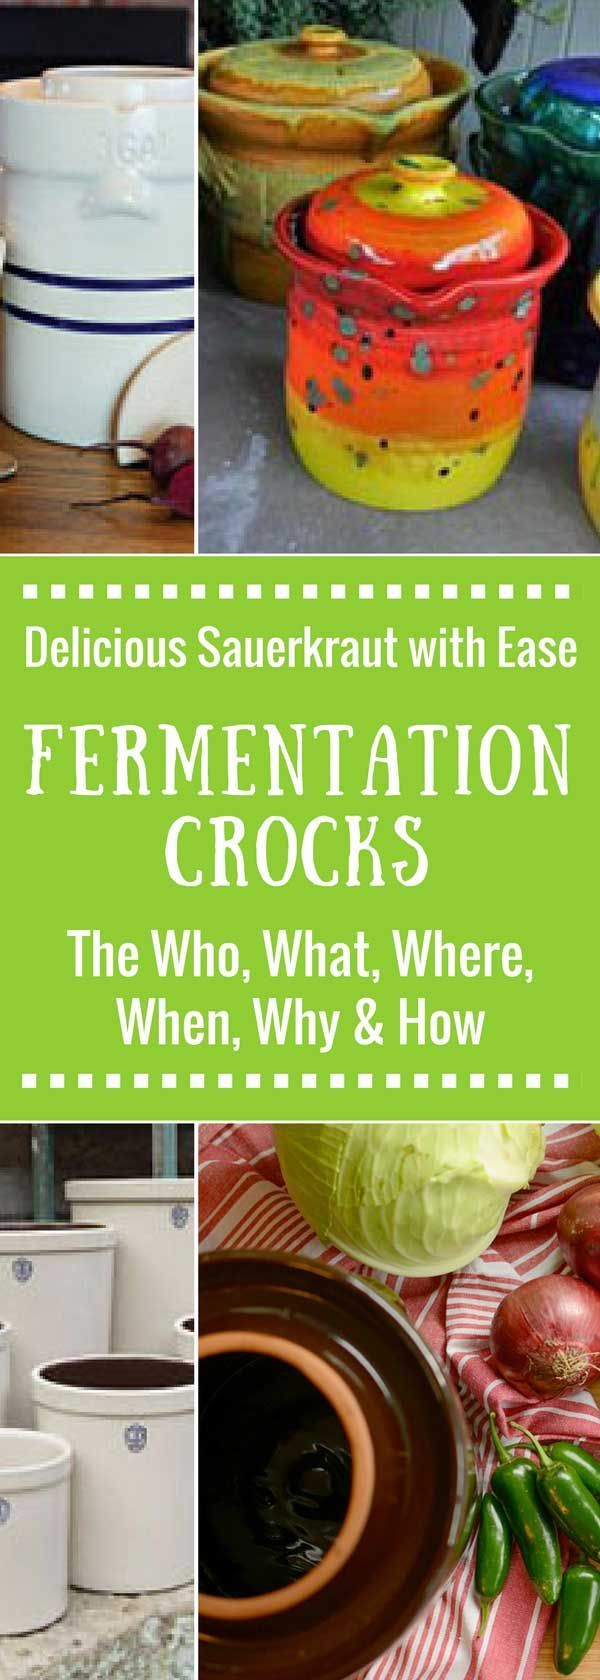 Fermenting crocks: water-sealed vs open crock. Best brands, How to use, Best size for your needs. Tips to ferment your sauerkraut with ease.